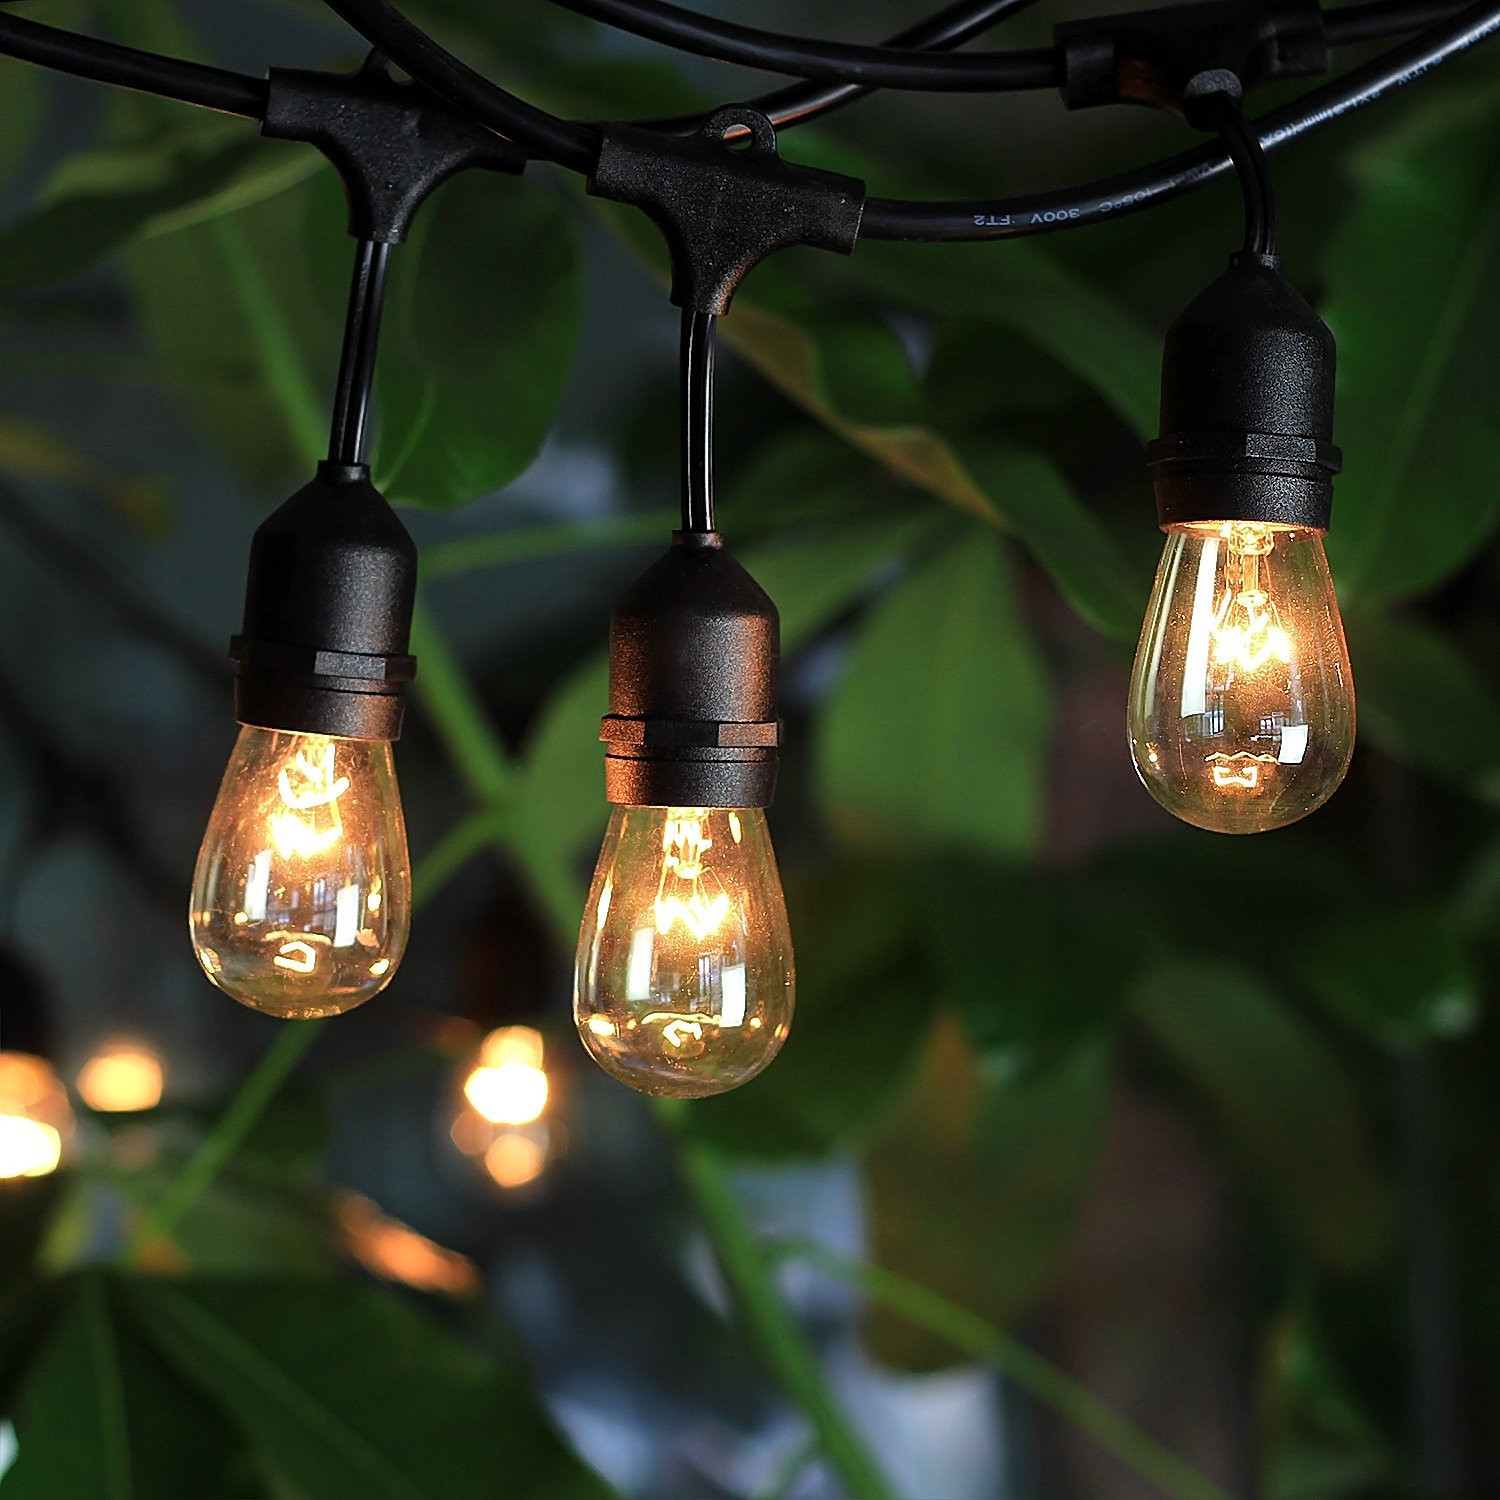 Landscape Lighting Replacement Bulbs  Newhouse Lighting Outdoor S14 Incandescent Replacement